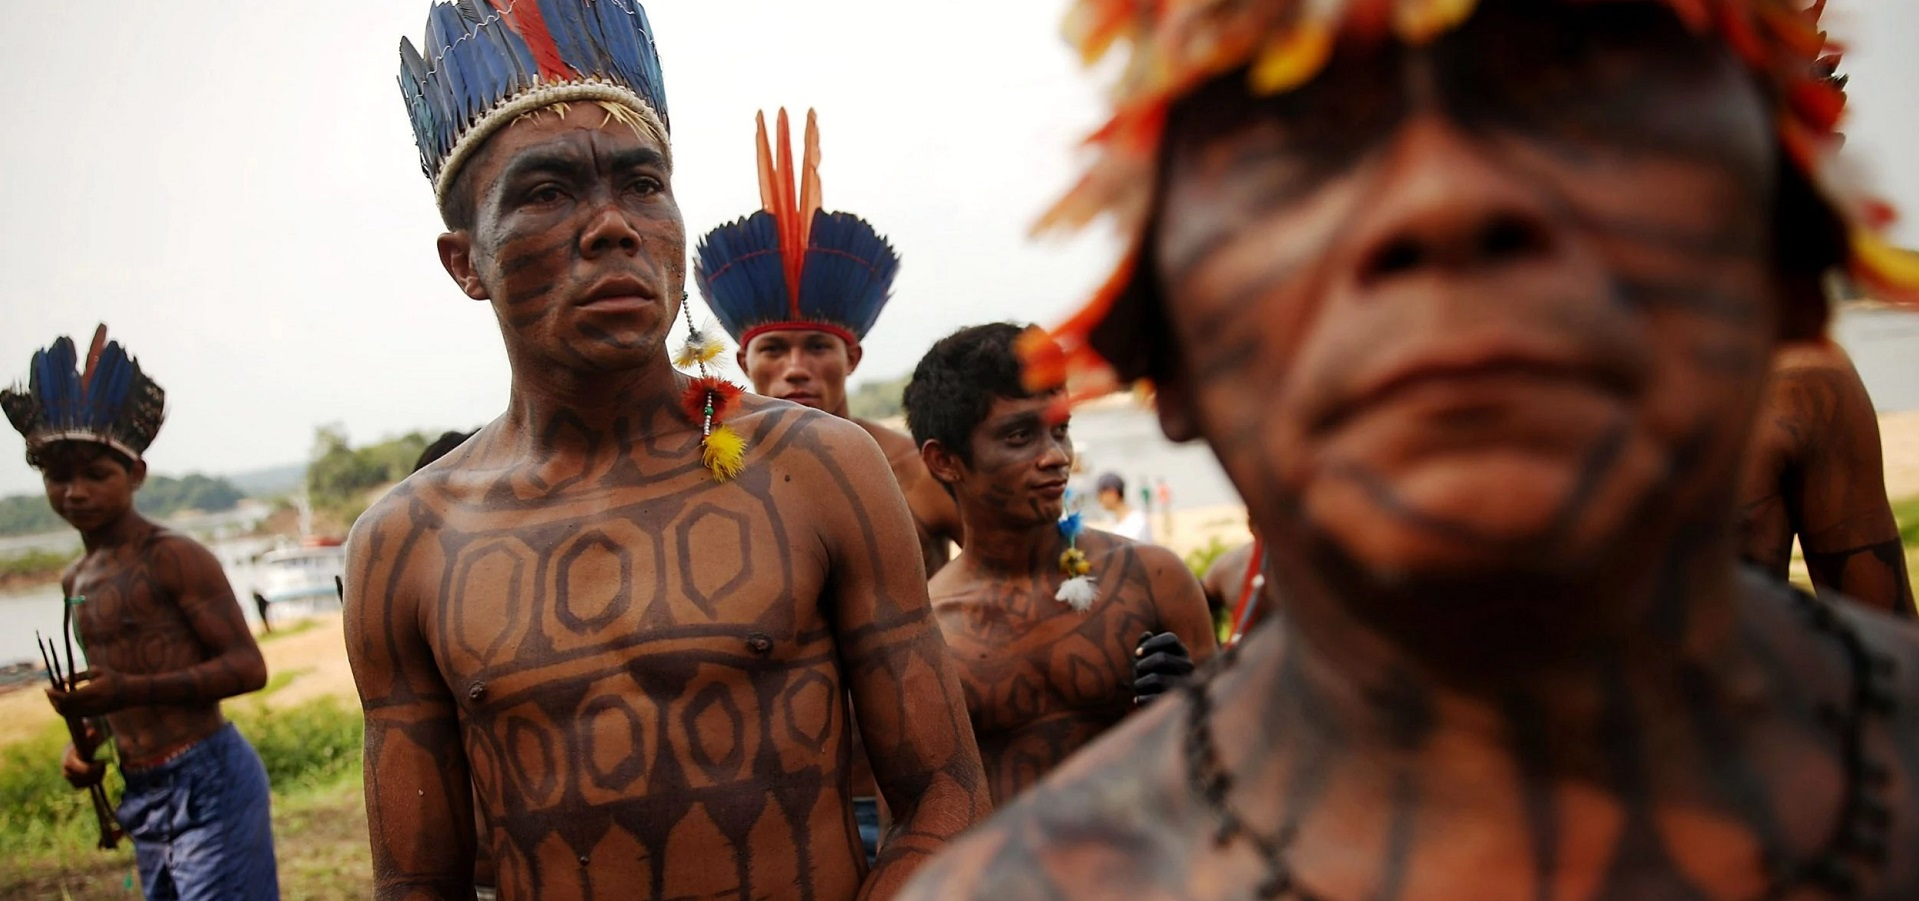 Coronavirus: In which situation the indigenous people of Amazon are in?